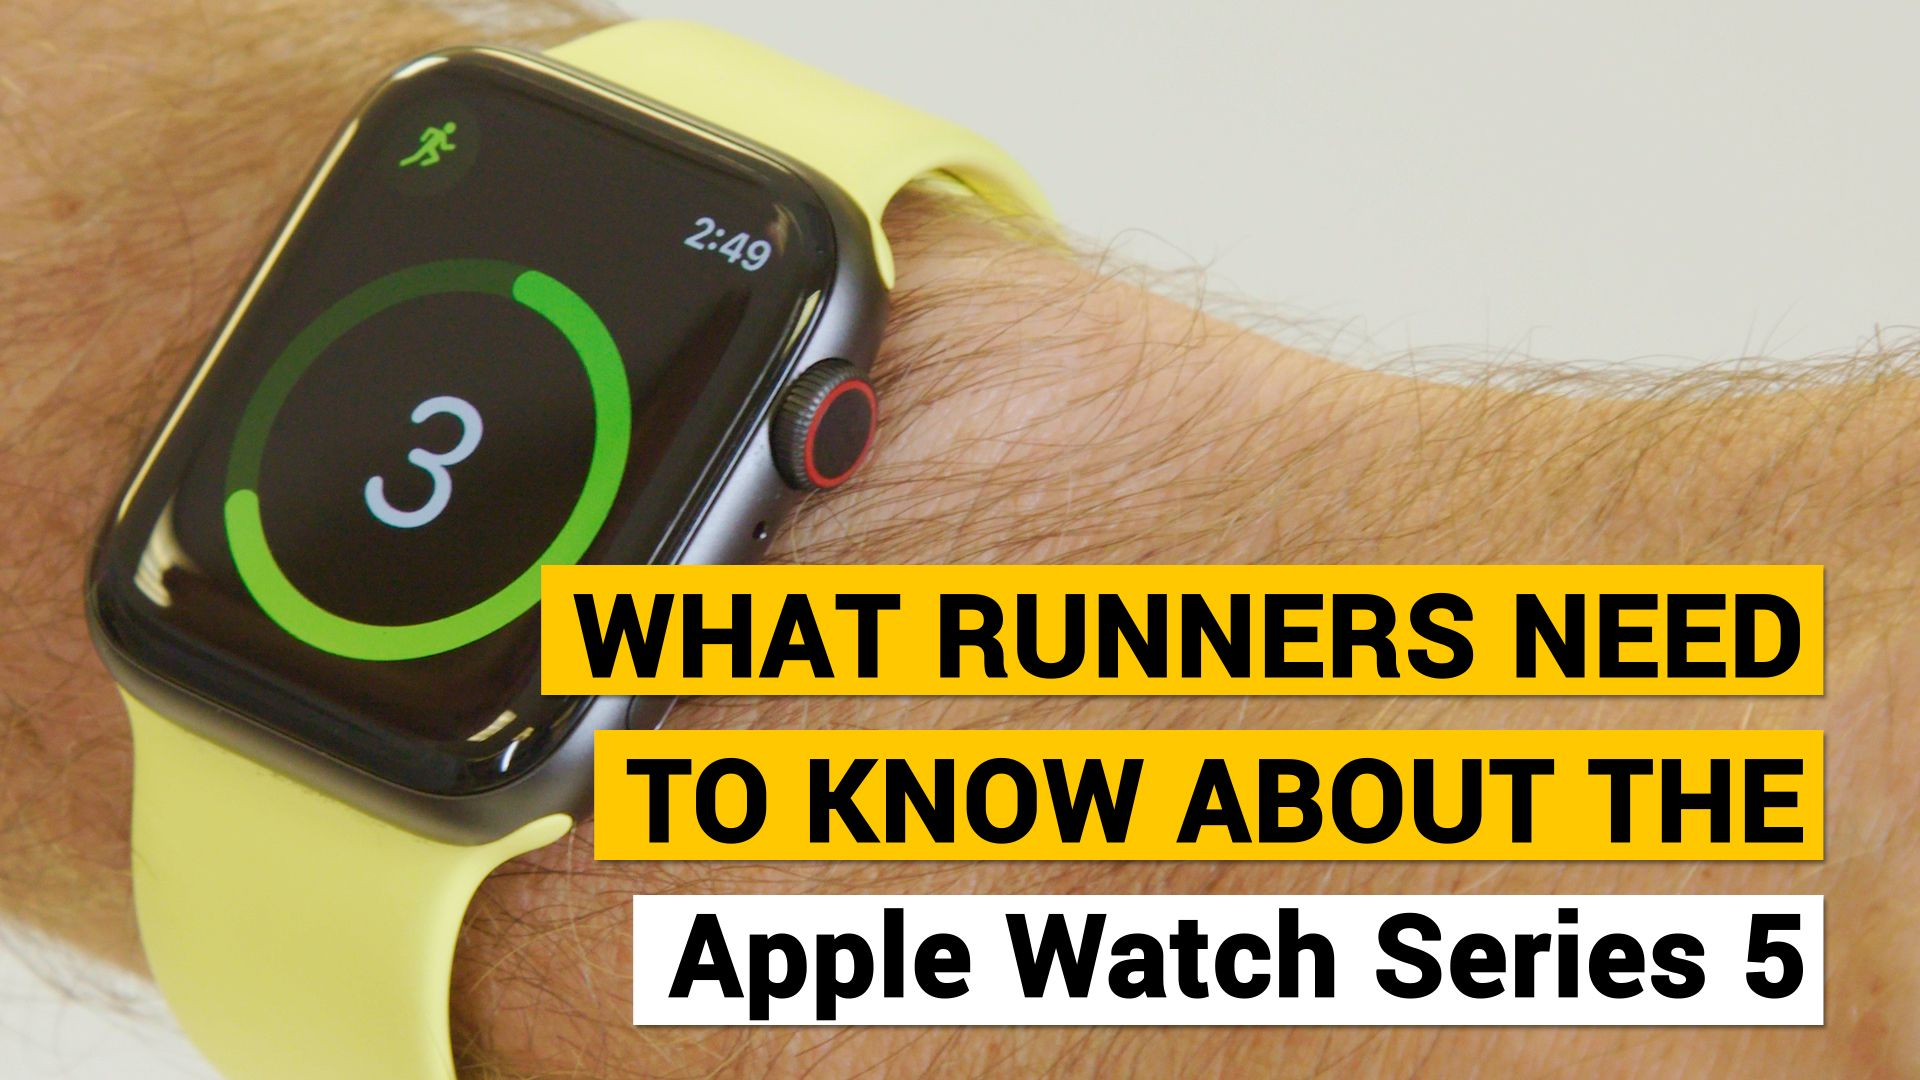 What Runners Need to Know About the Apple Watch Series 5